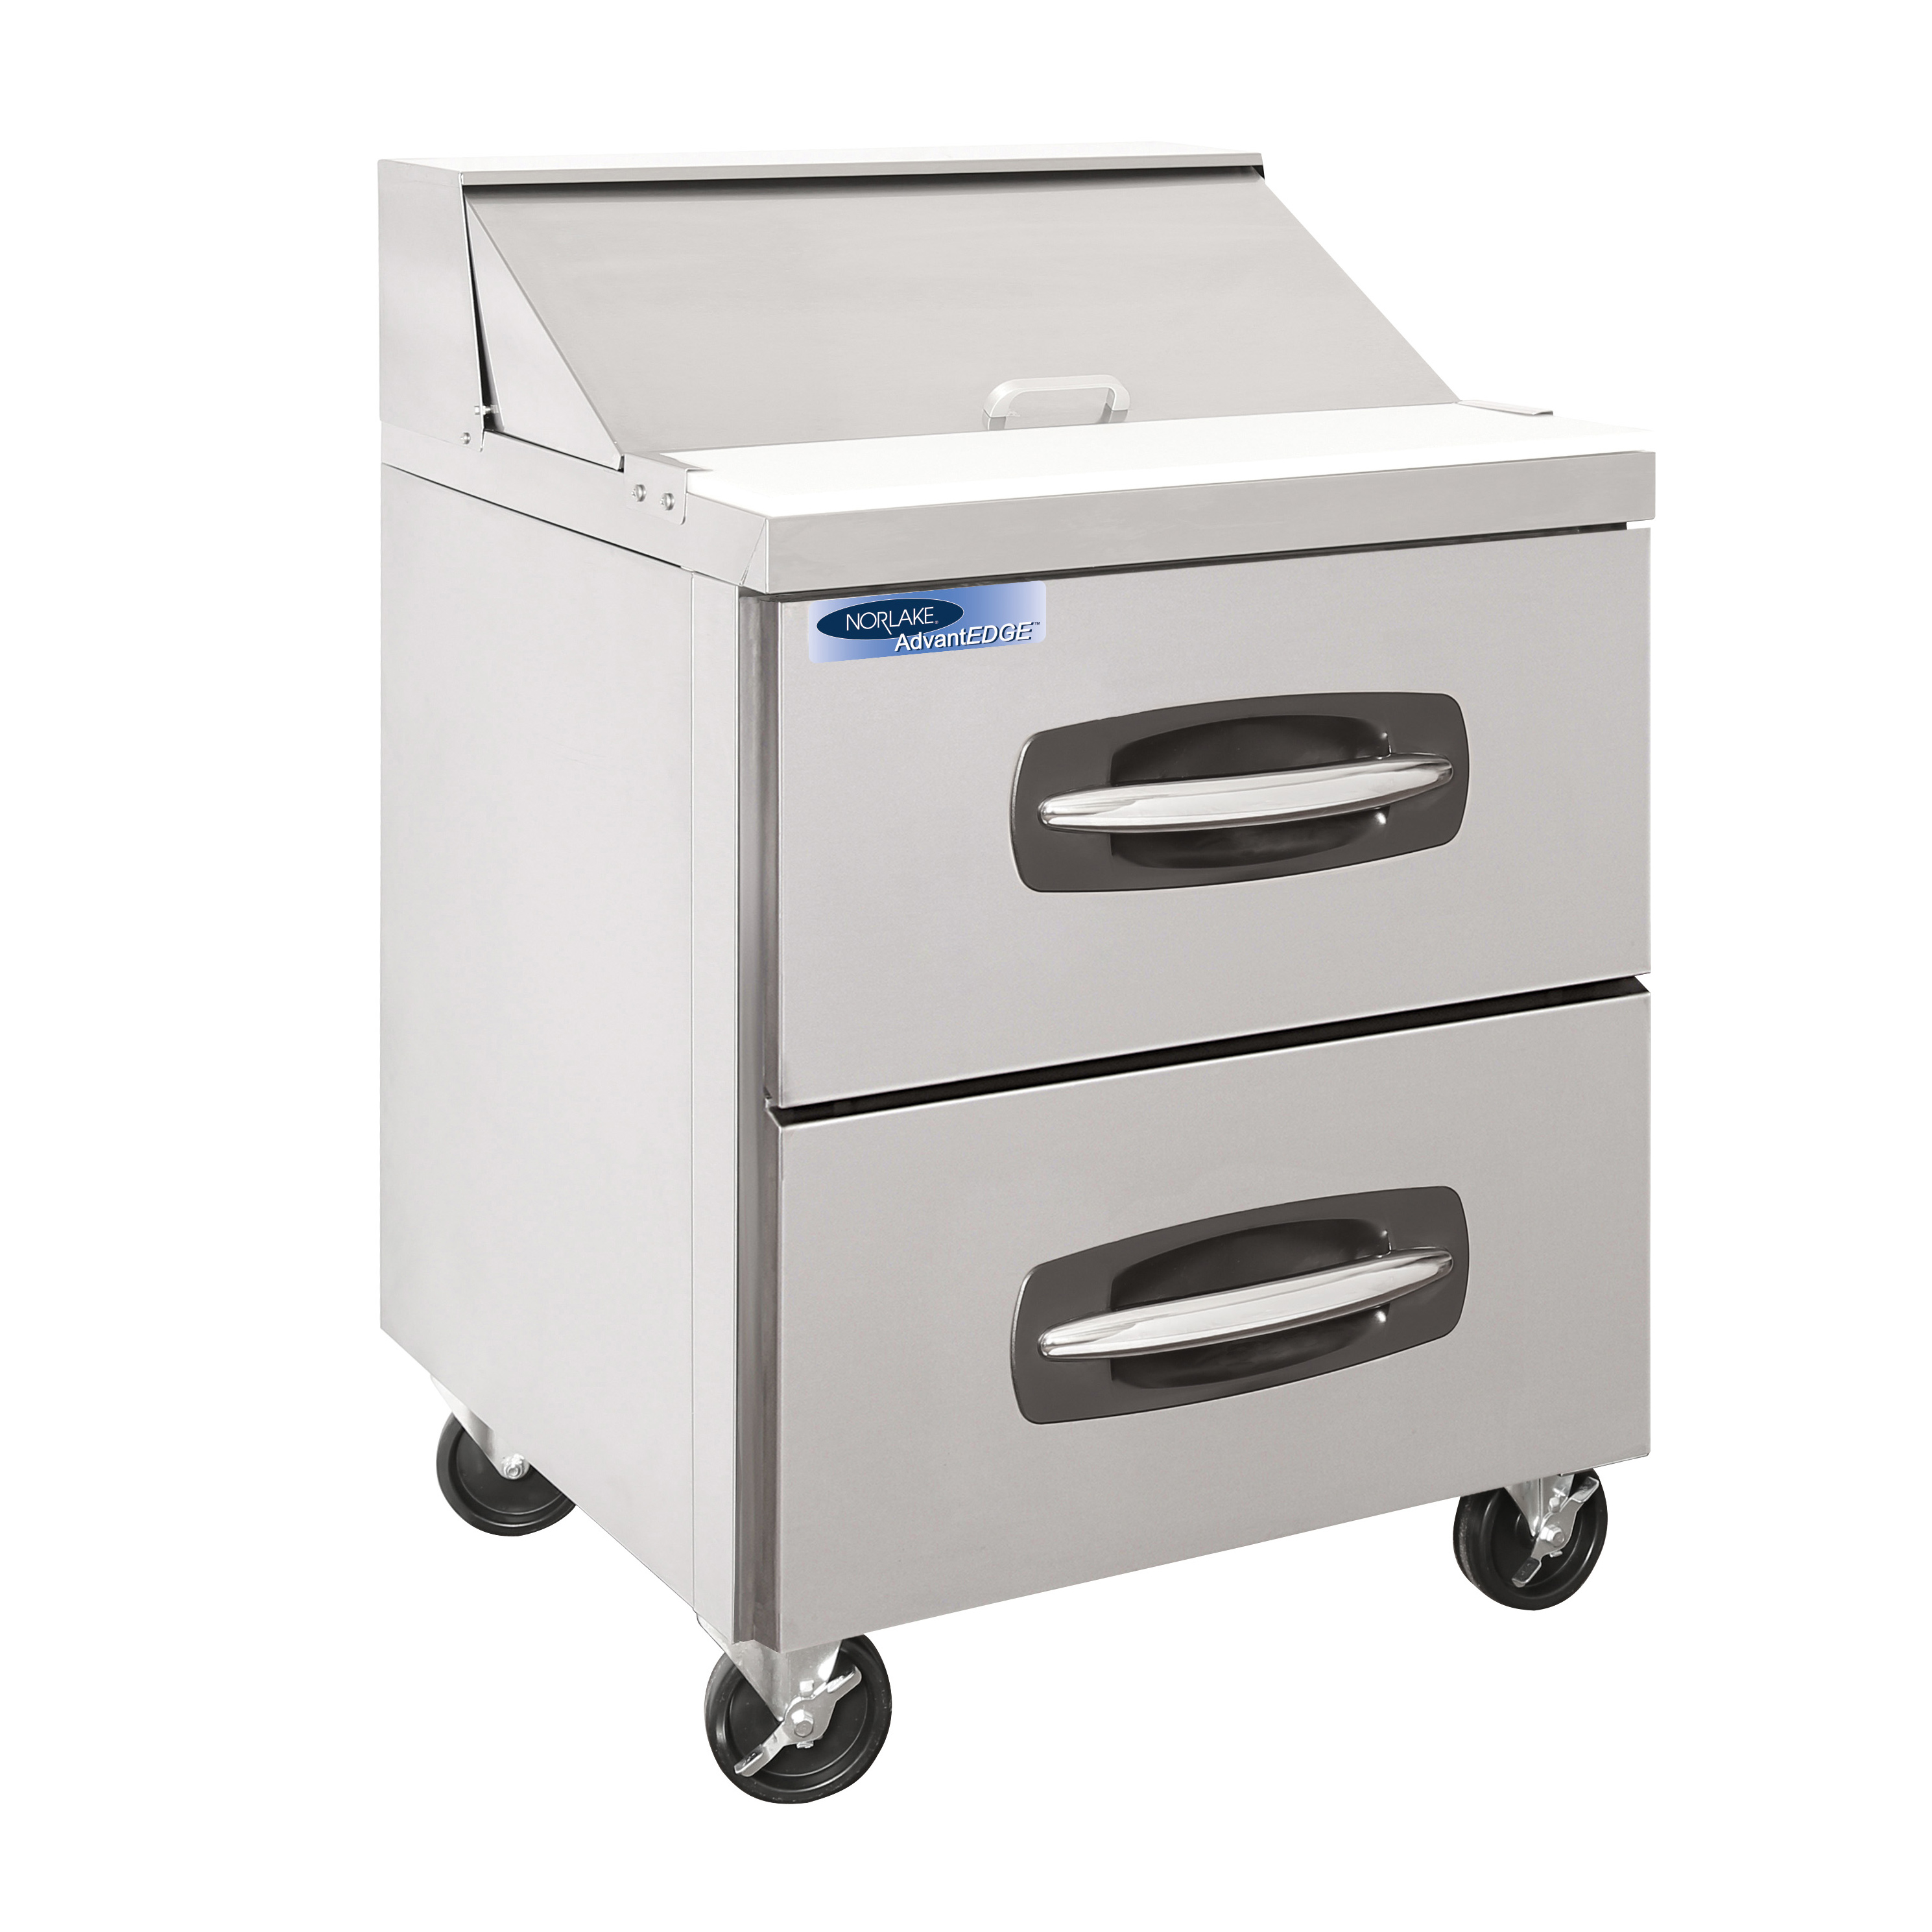 Nor-Lake NLSP27-8A-001B refrigerated counter, sandwich / salad unit